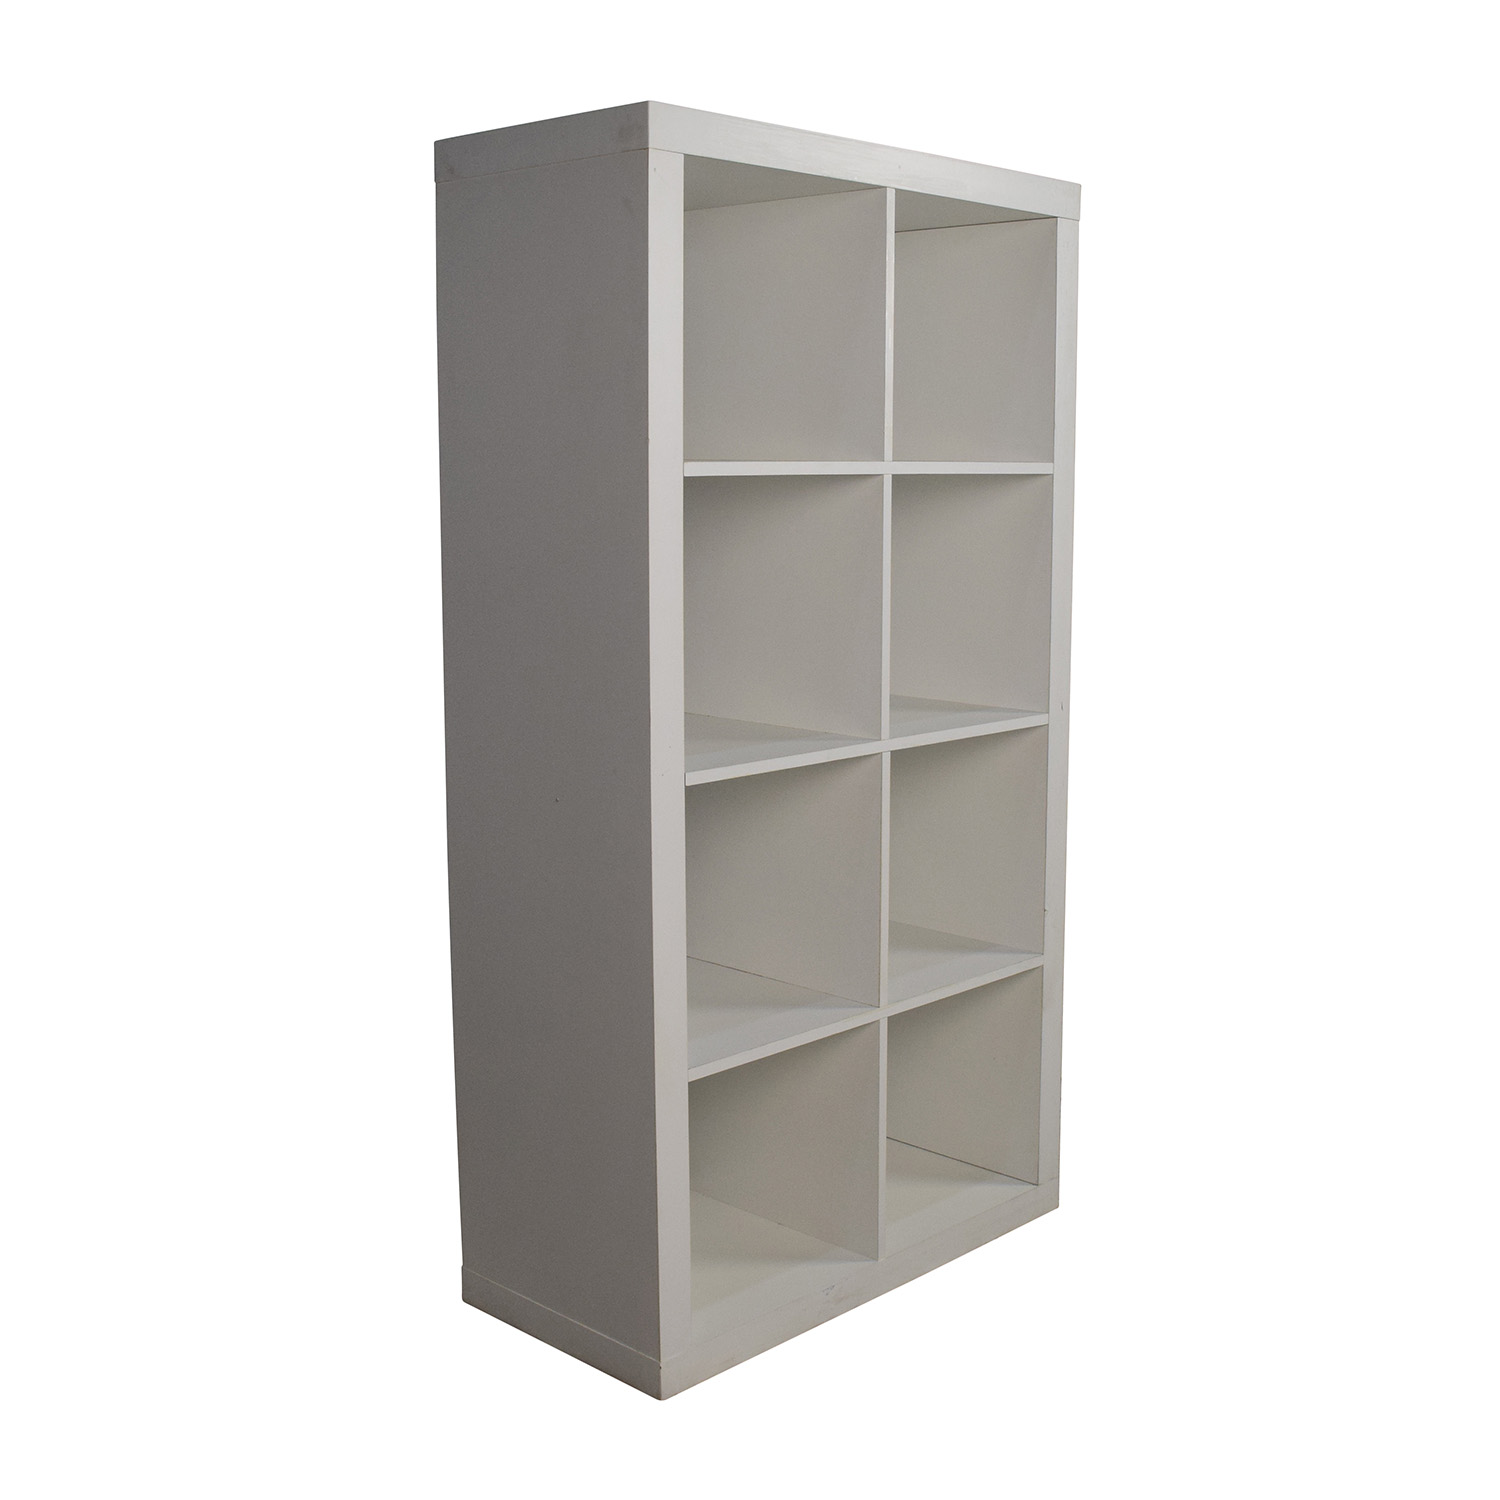 53 Off Better Homes And Gardens Better Homes Gardens White Geometric Bookshelf Storage